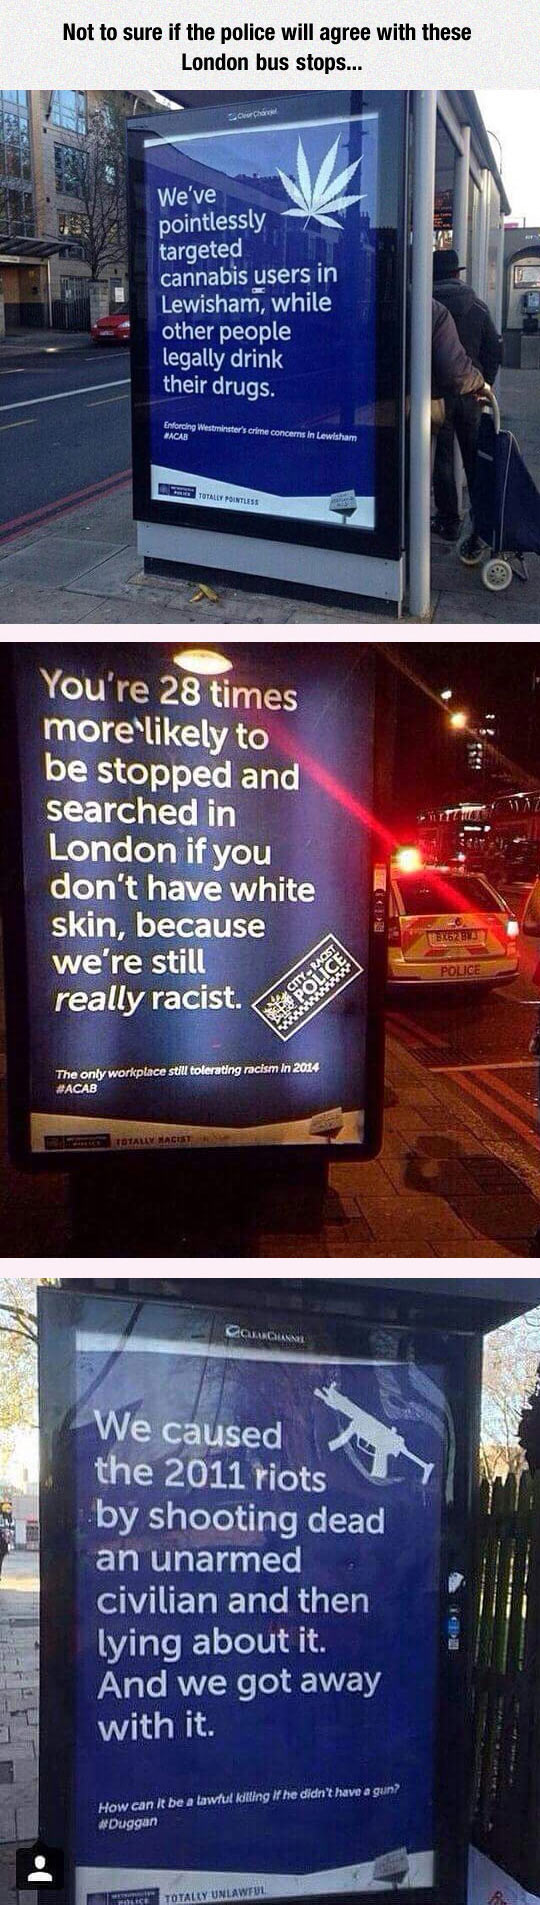 funny-police-bus-stop-London-thoughts